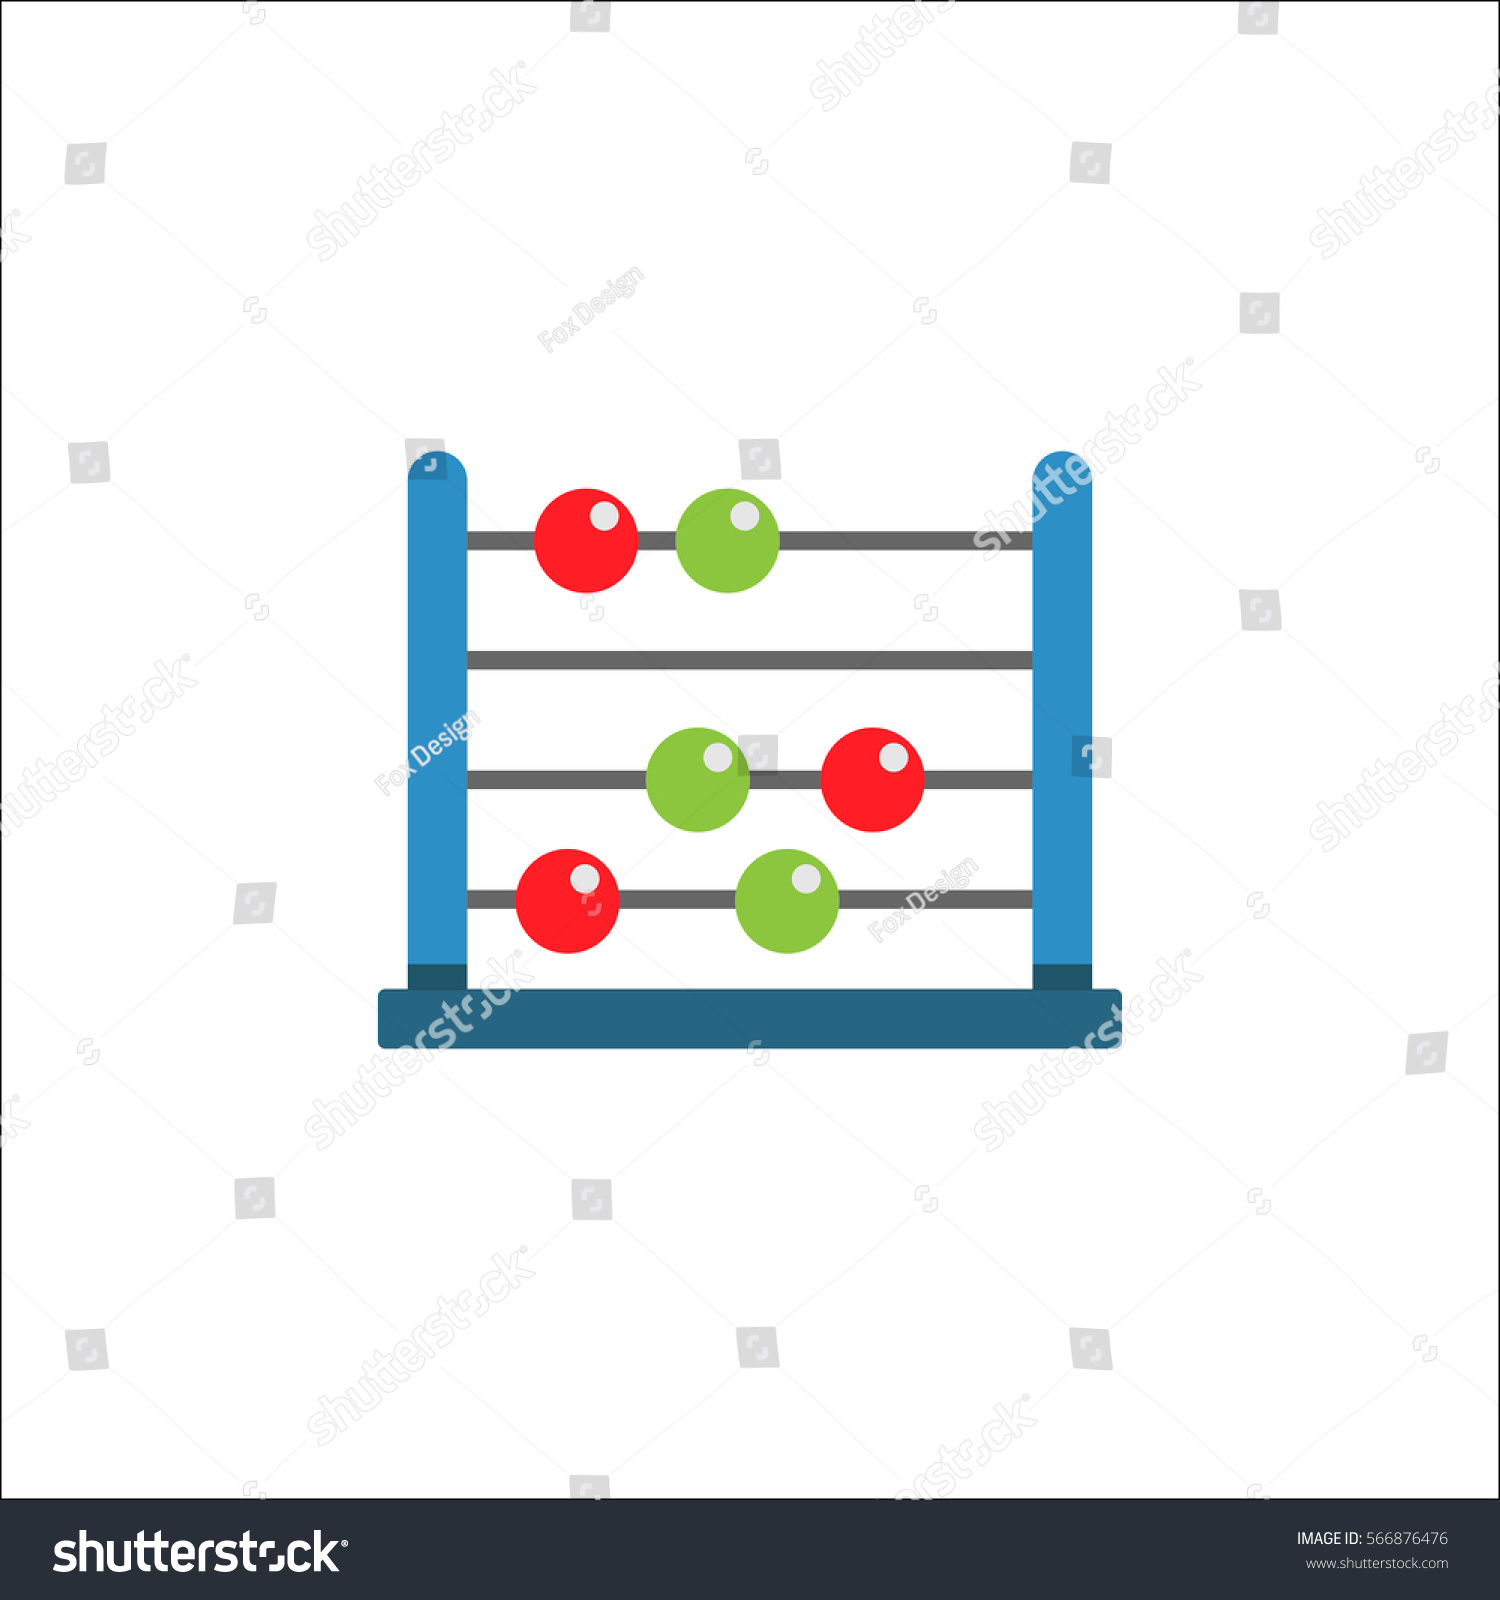 School abacus flat icon education school stock vector 566876476 school abacus flat icon education and school element math vector graphics a colorful biocorpaavc Image collections